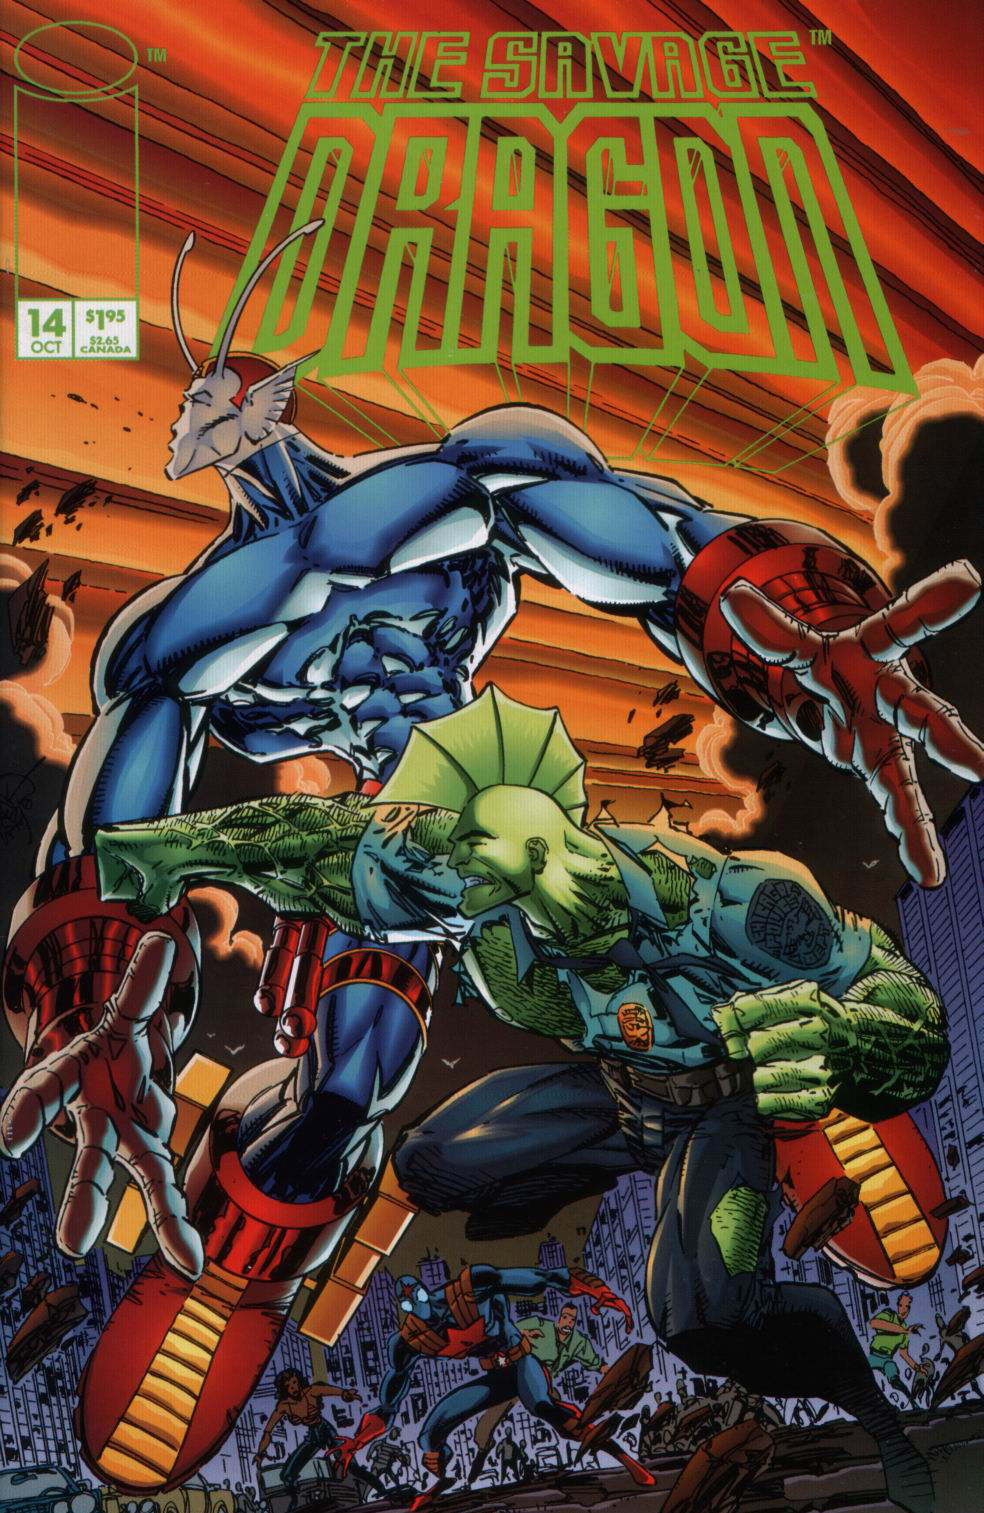 Cover Savage Dragon Vol.2 #14